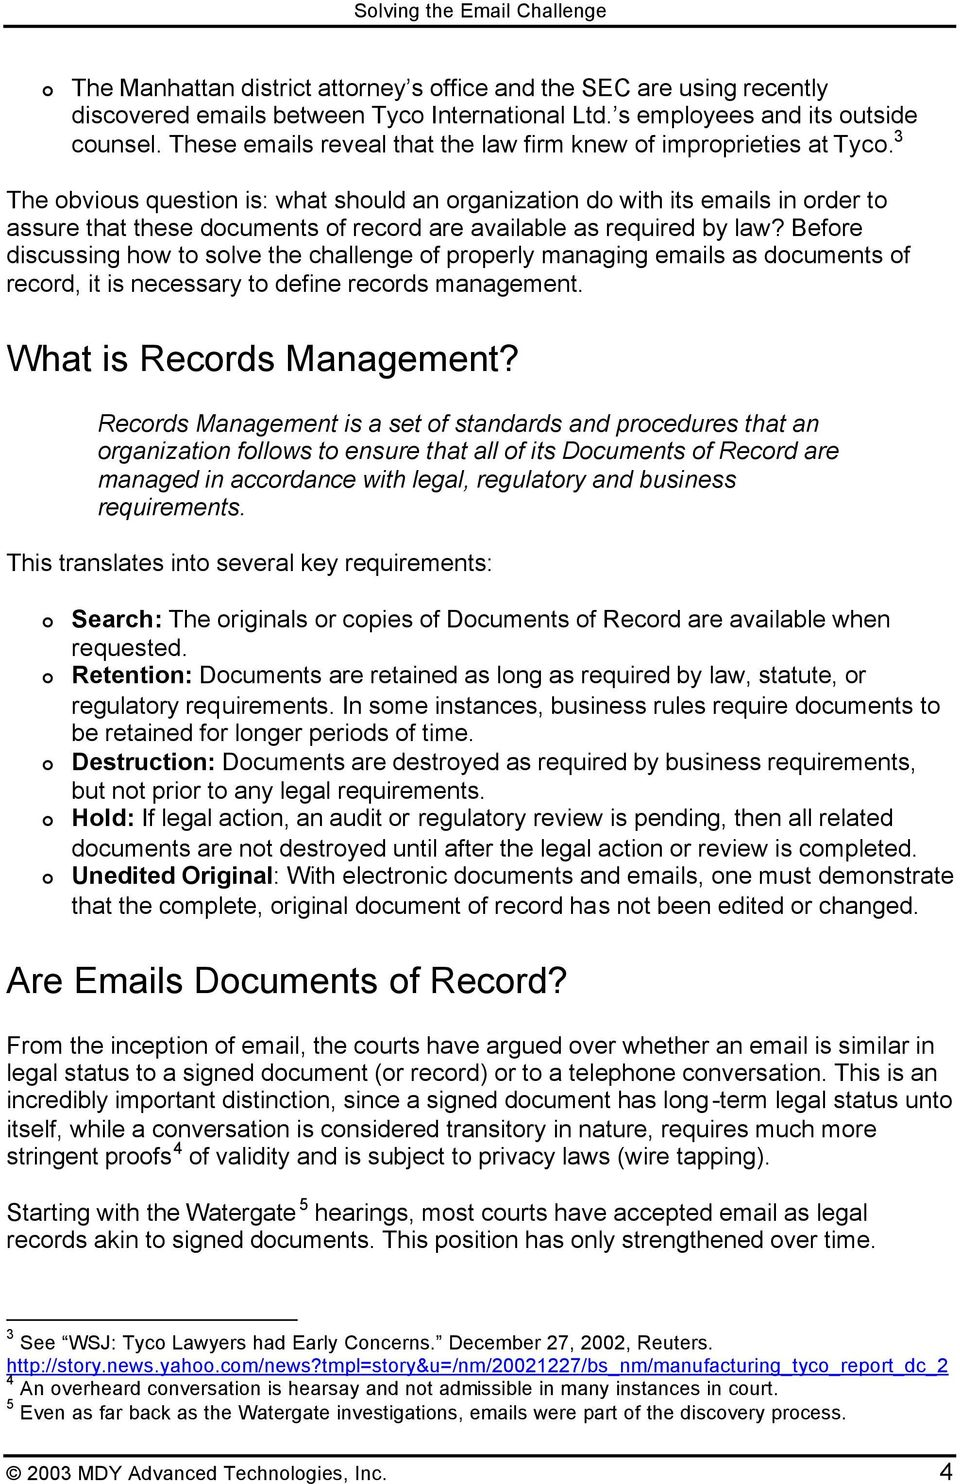 3 The obvious question is: what should an organization do with its emails in order to assure that these documents of record are available as required by law?